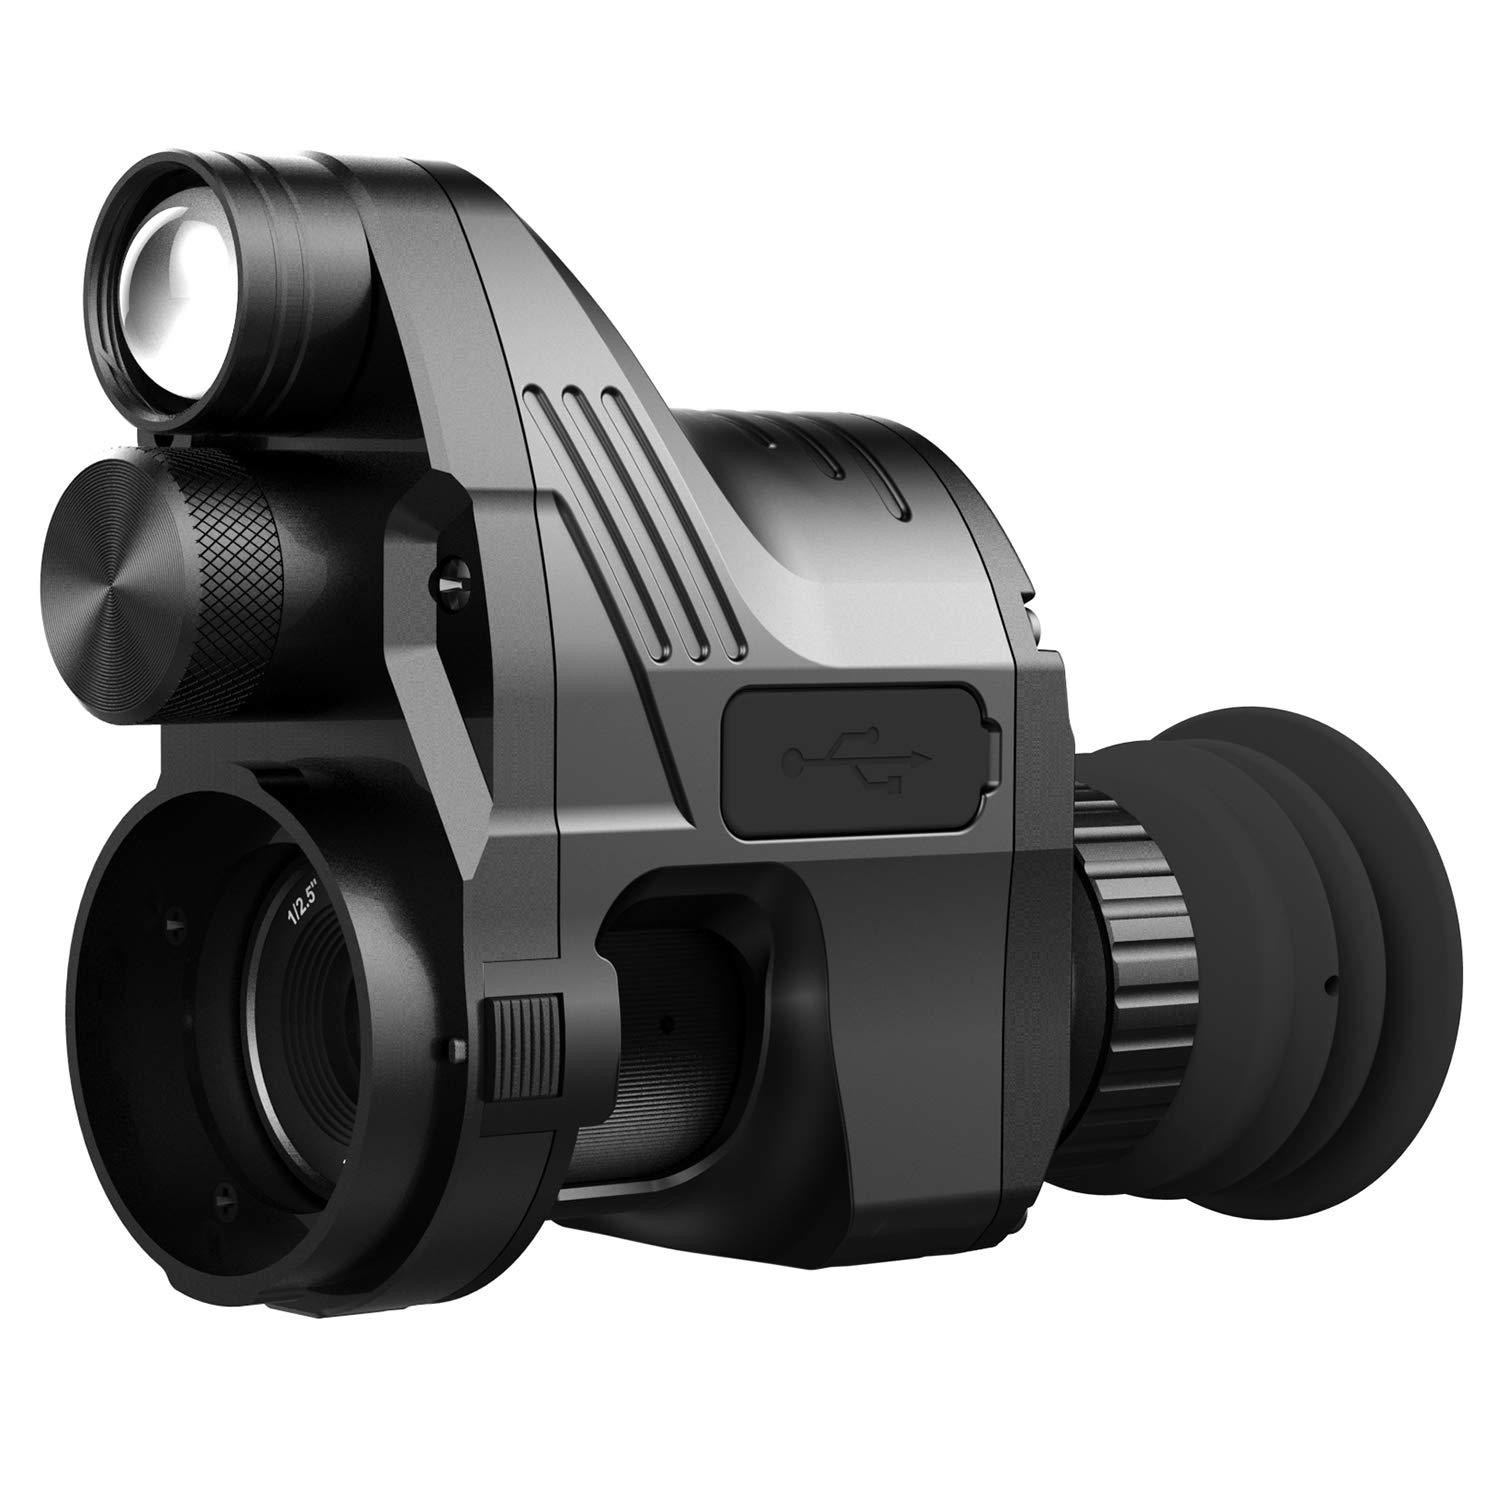 PARD NV007 Night Vision Scope pic-5